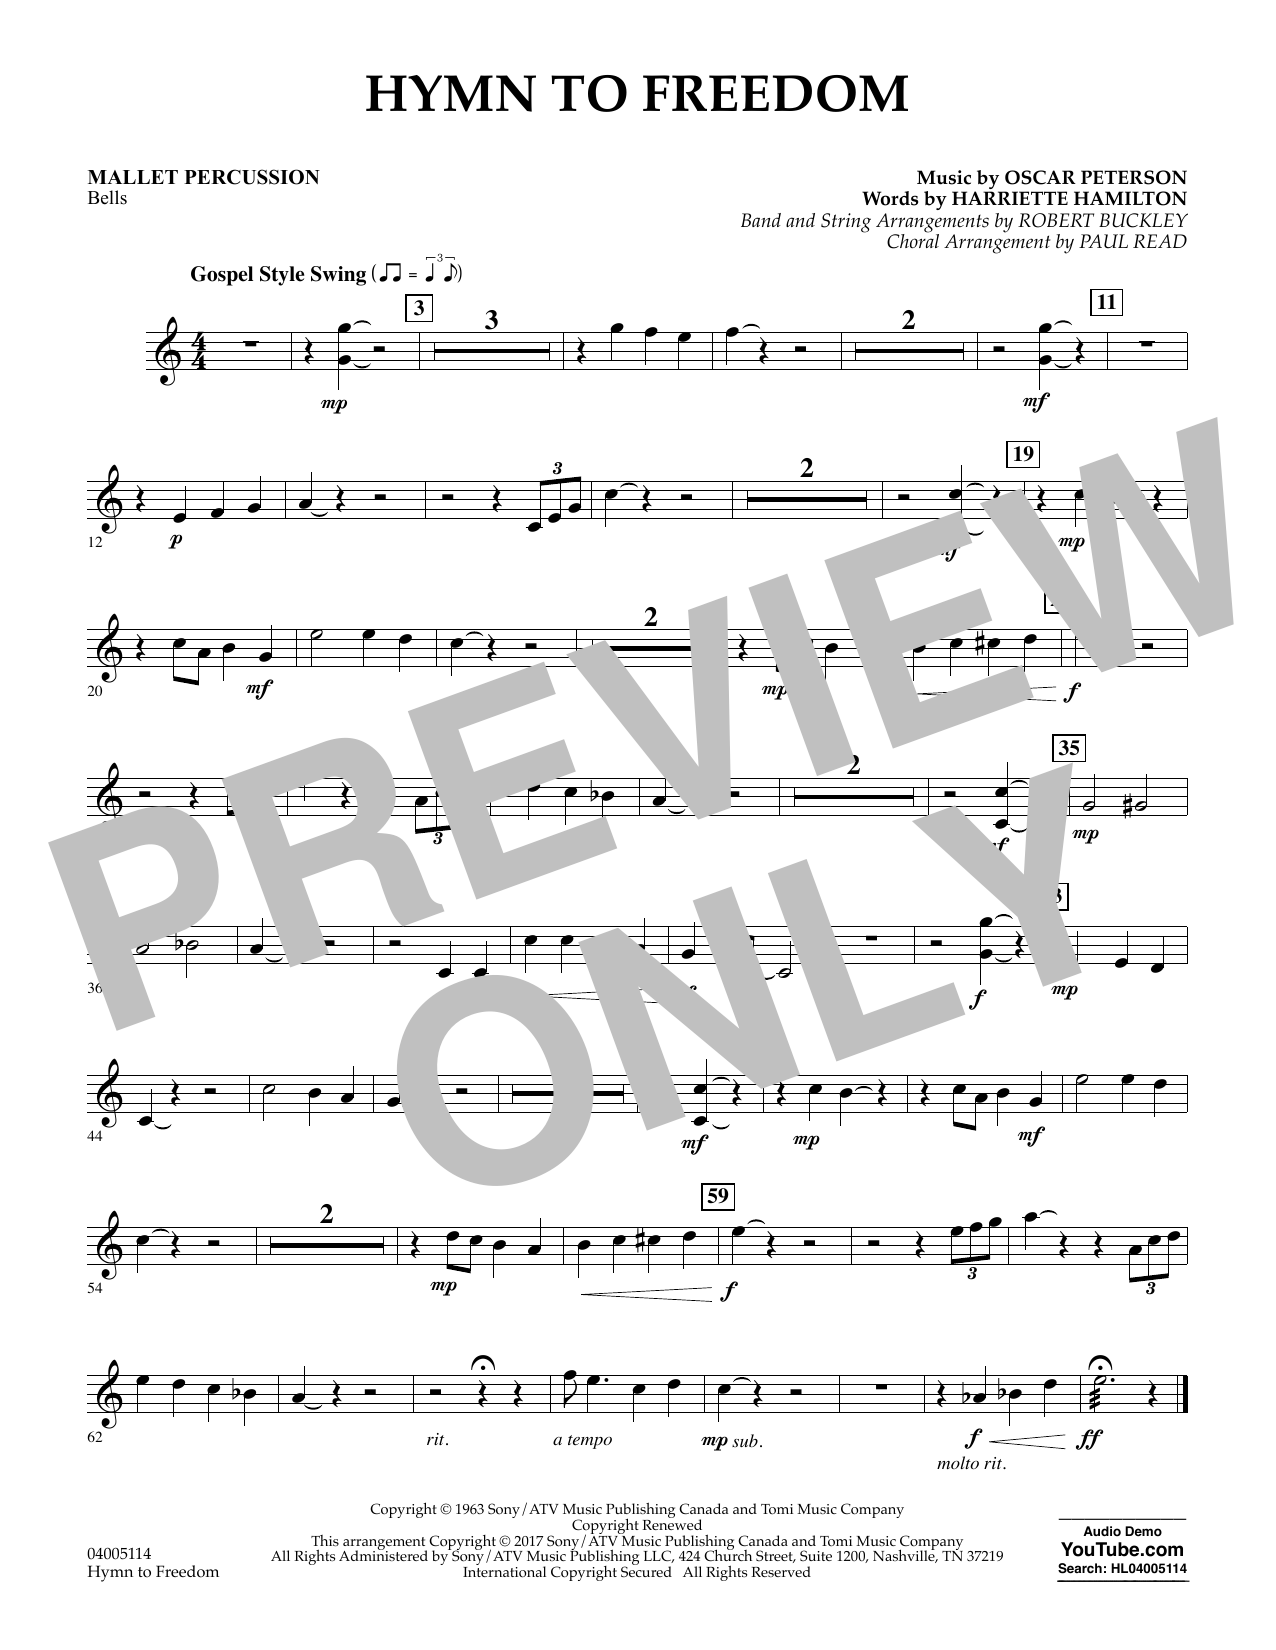 Hymn to Freedom - Mallet Percussion (Flex-Band)